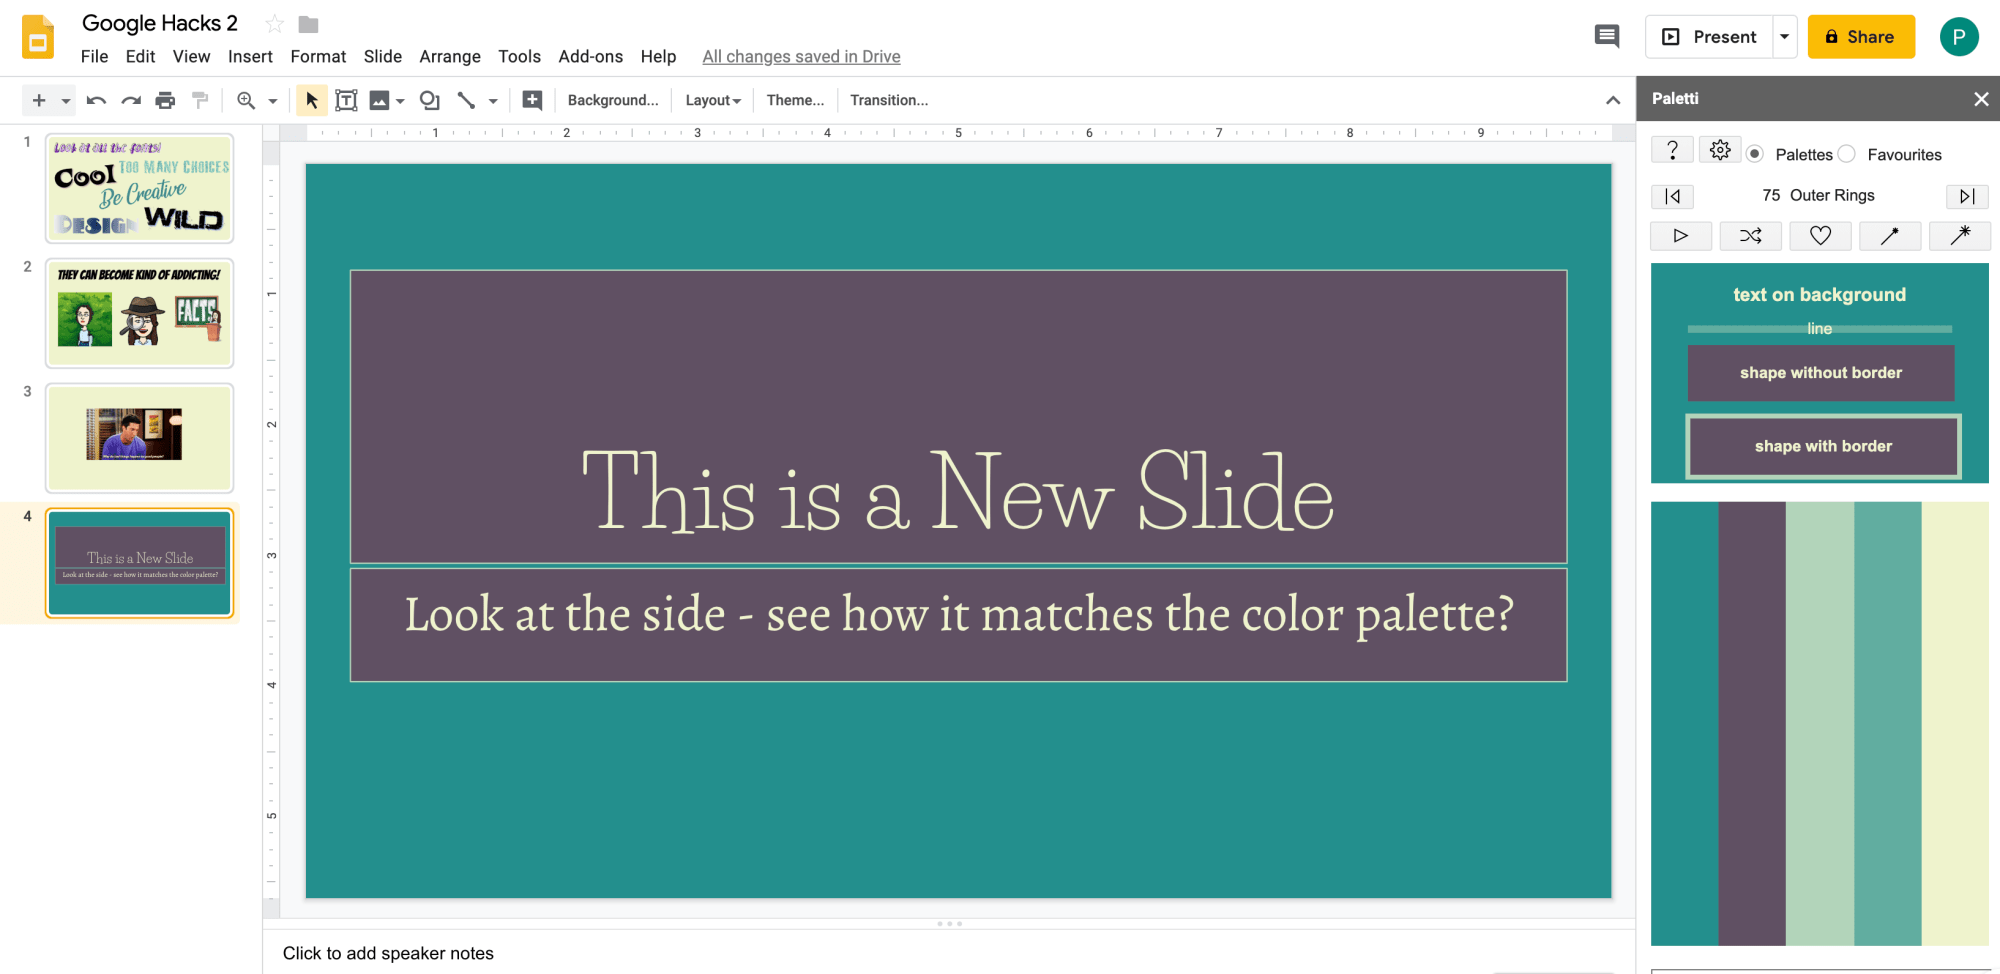 10 Hacks For Creating With Google Slides Part 2 Peacefield History Google Slides Learning Google Classroom Google